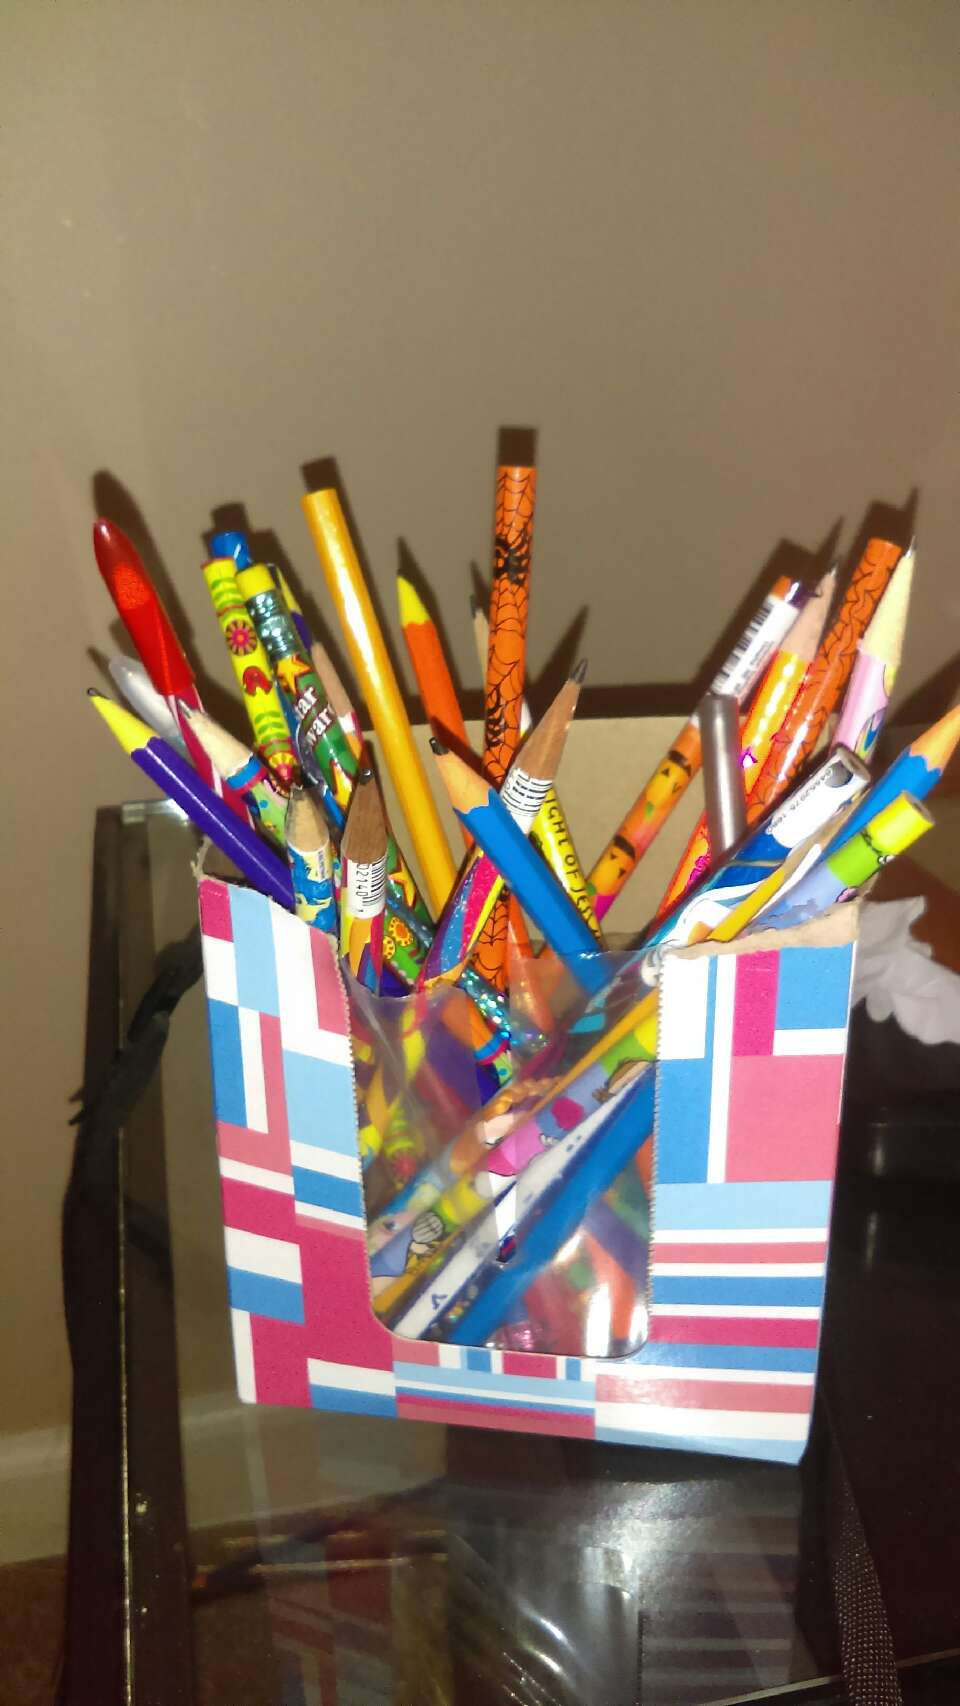 put your child's pencils in there